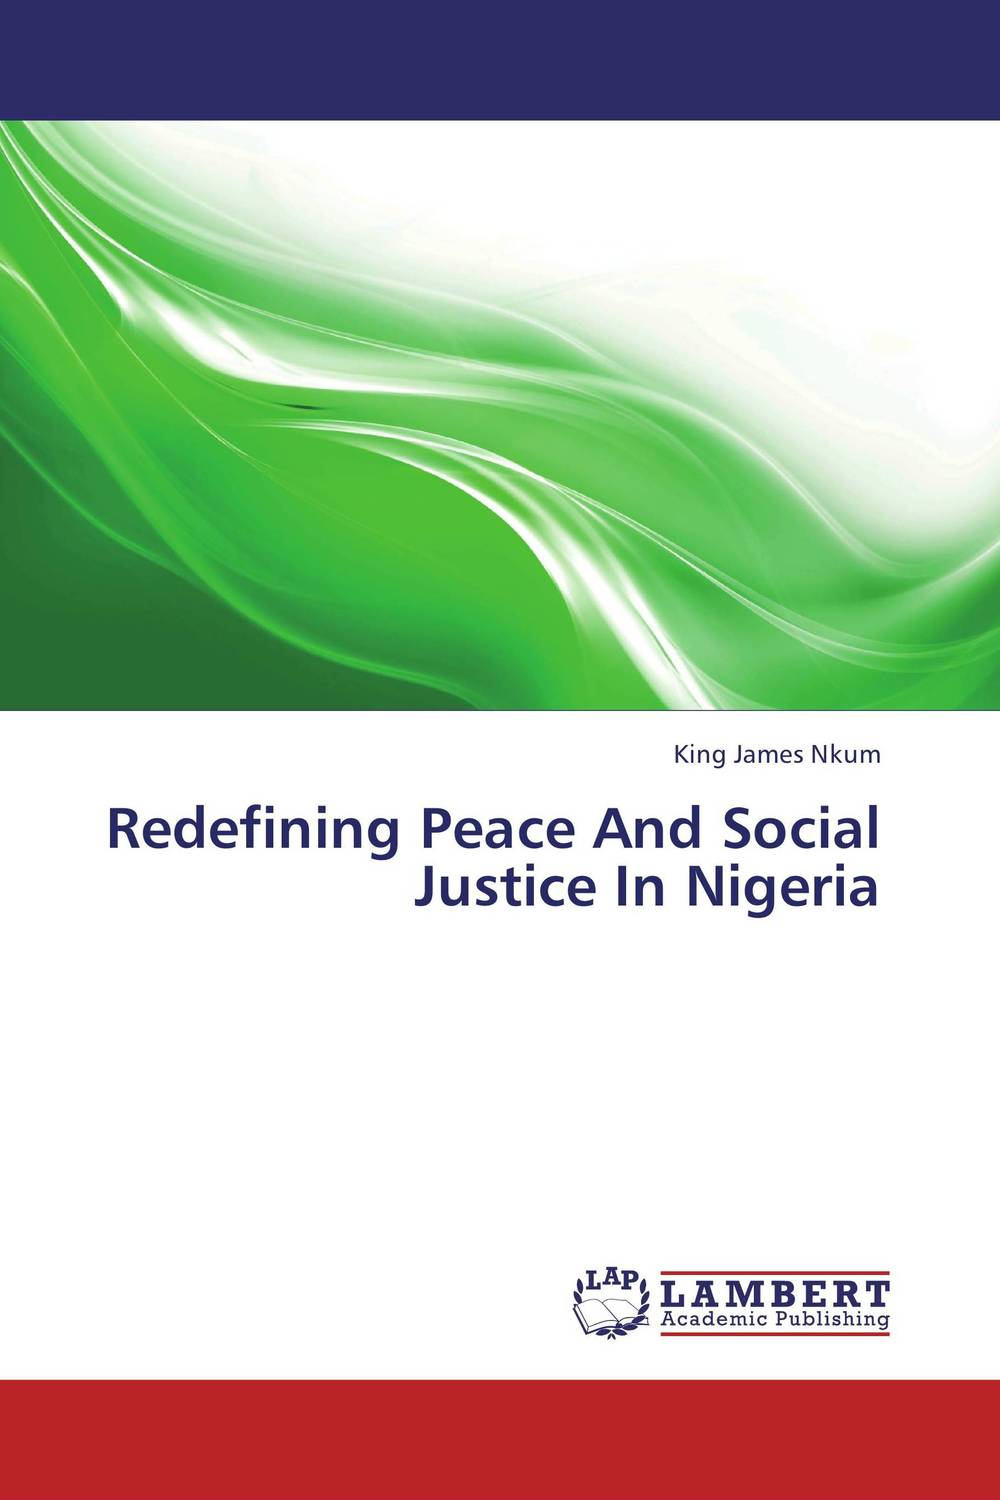 все цены на  Redefining Peace And Social Justice In Nigeria  онлайн